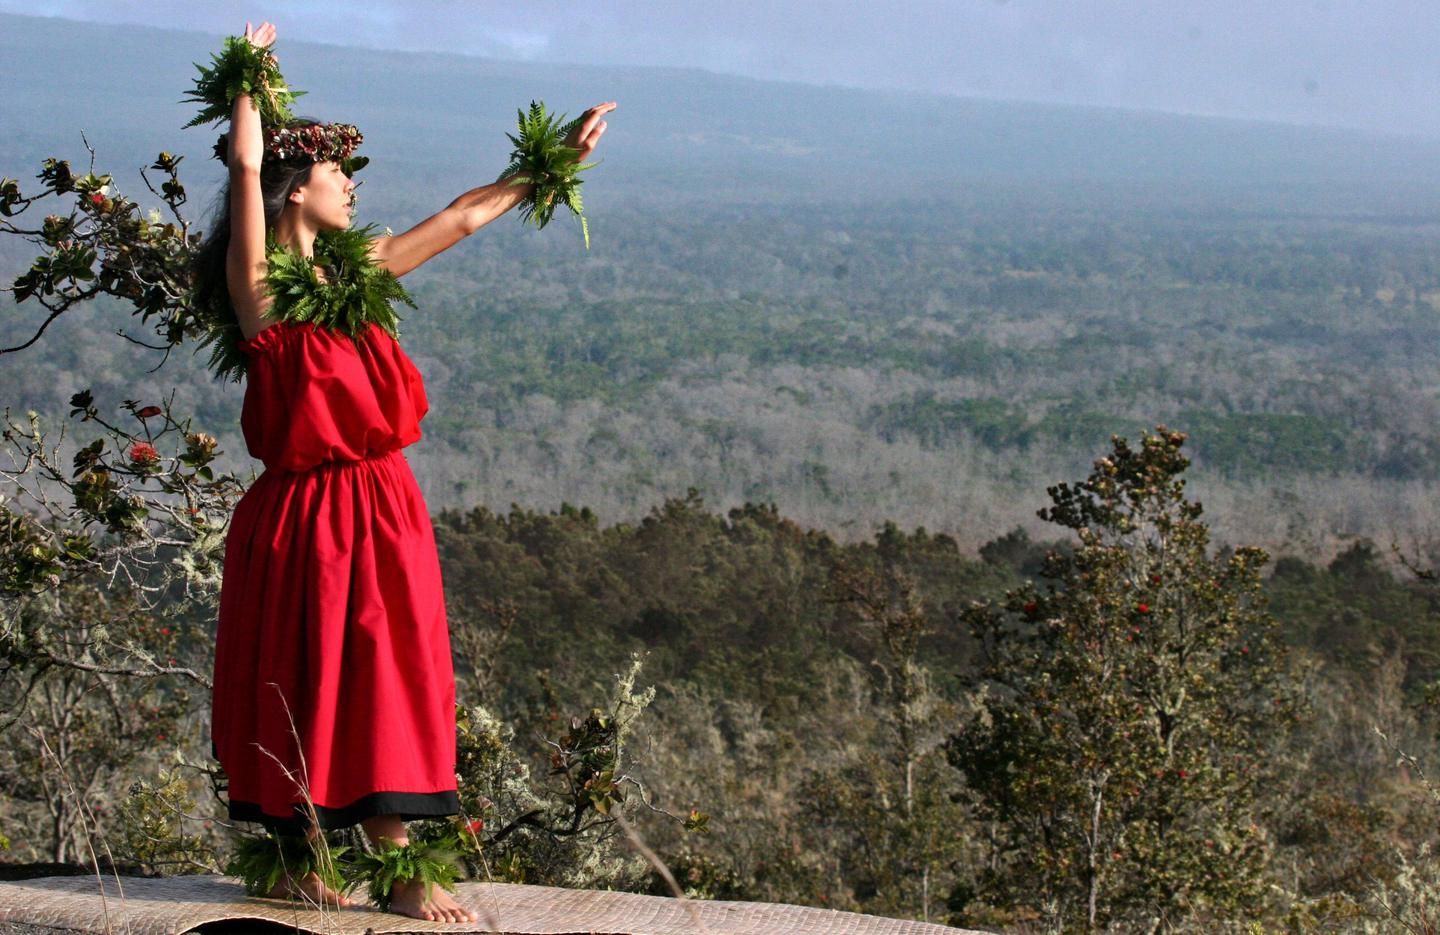 Hula at KīlaueaKīlauea is home to important and sacred cultural sites stretching back centuries.